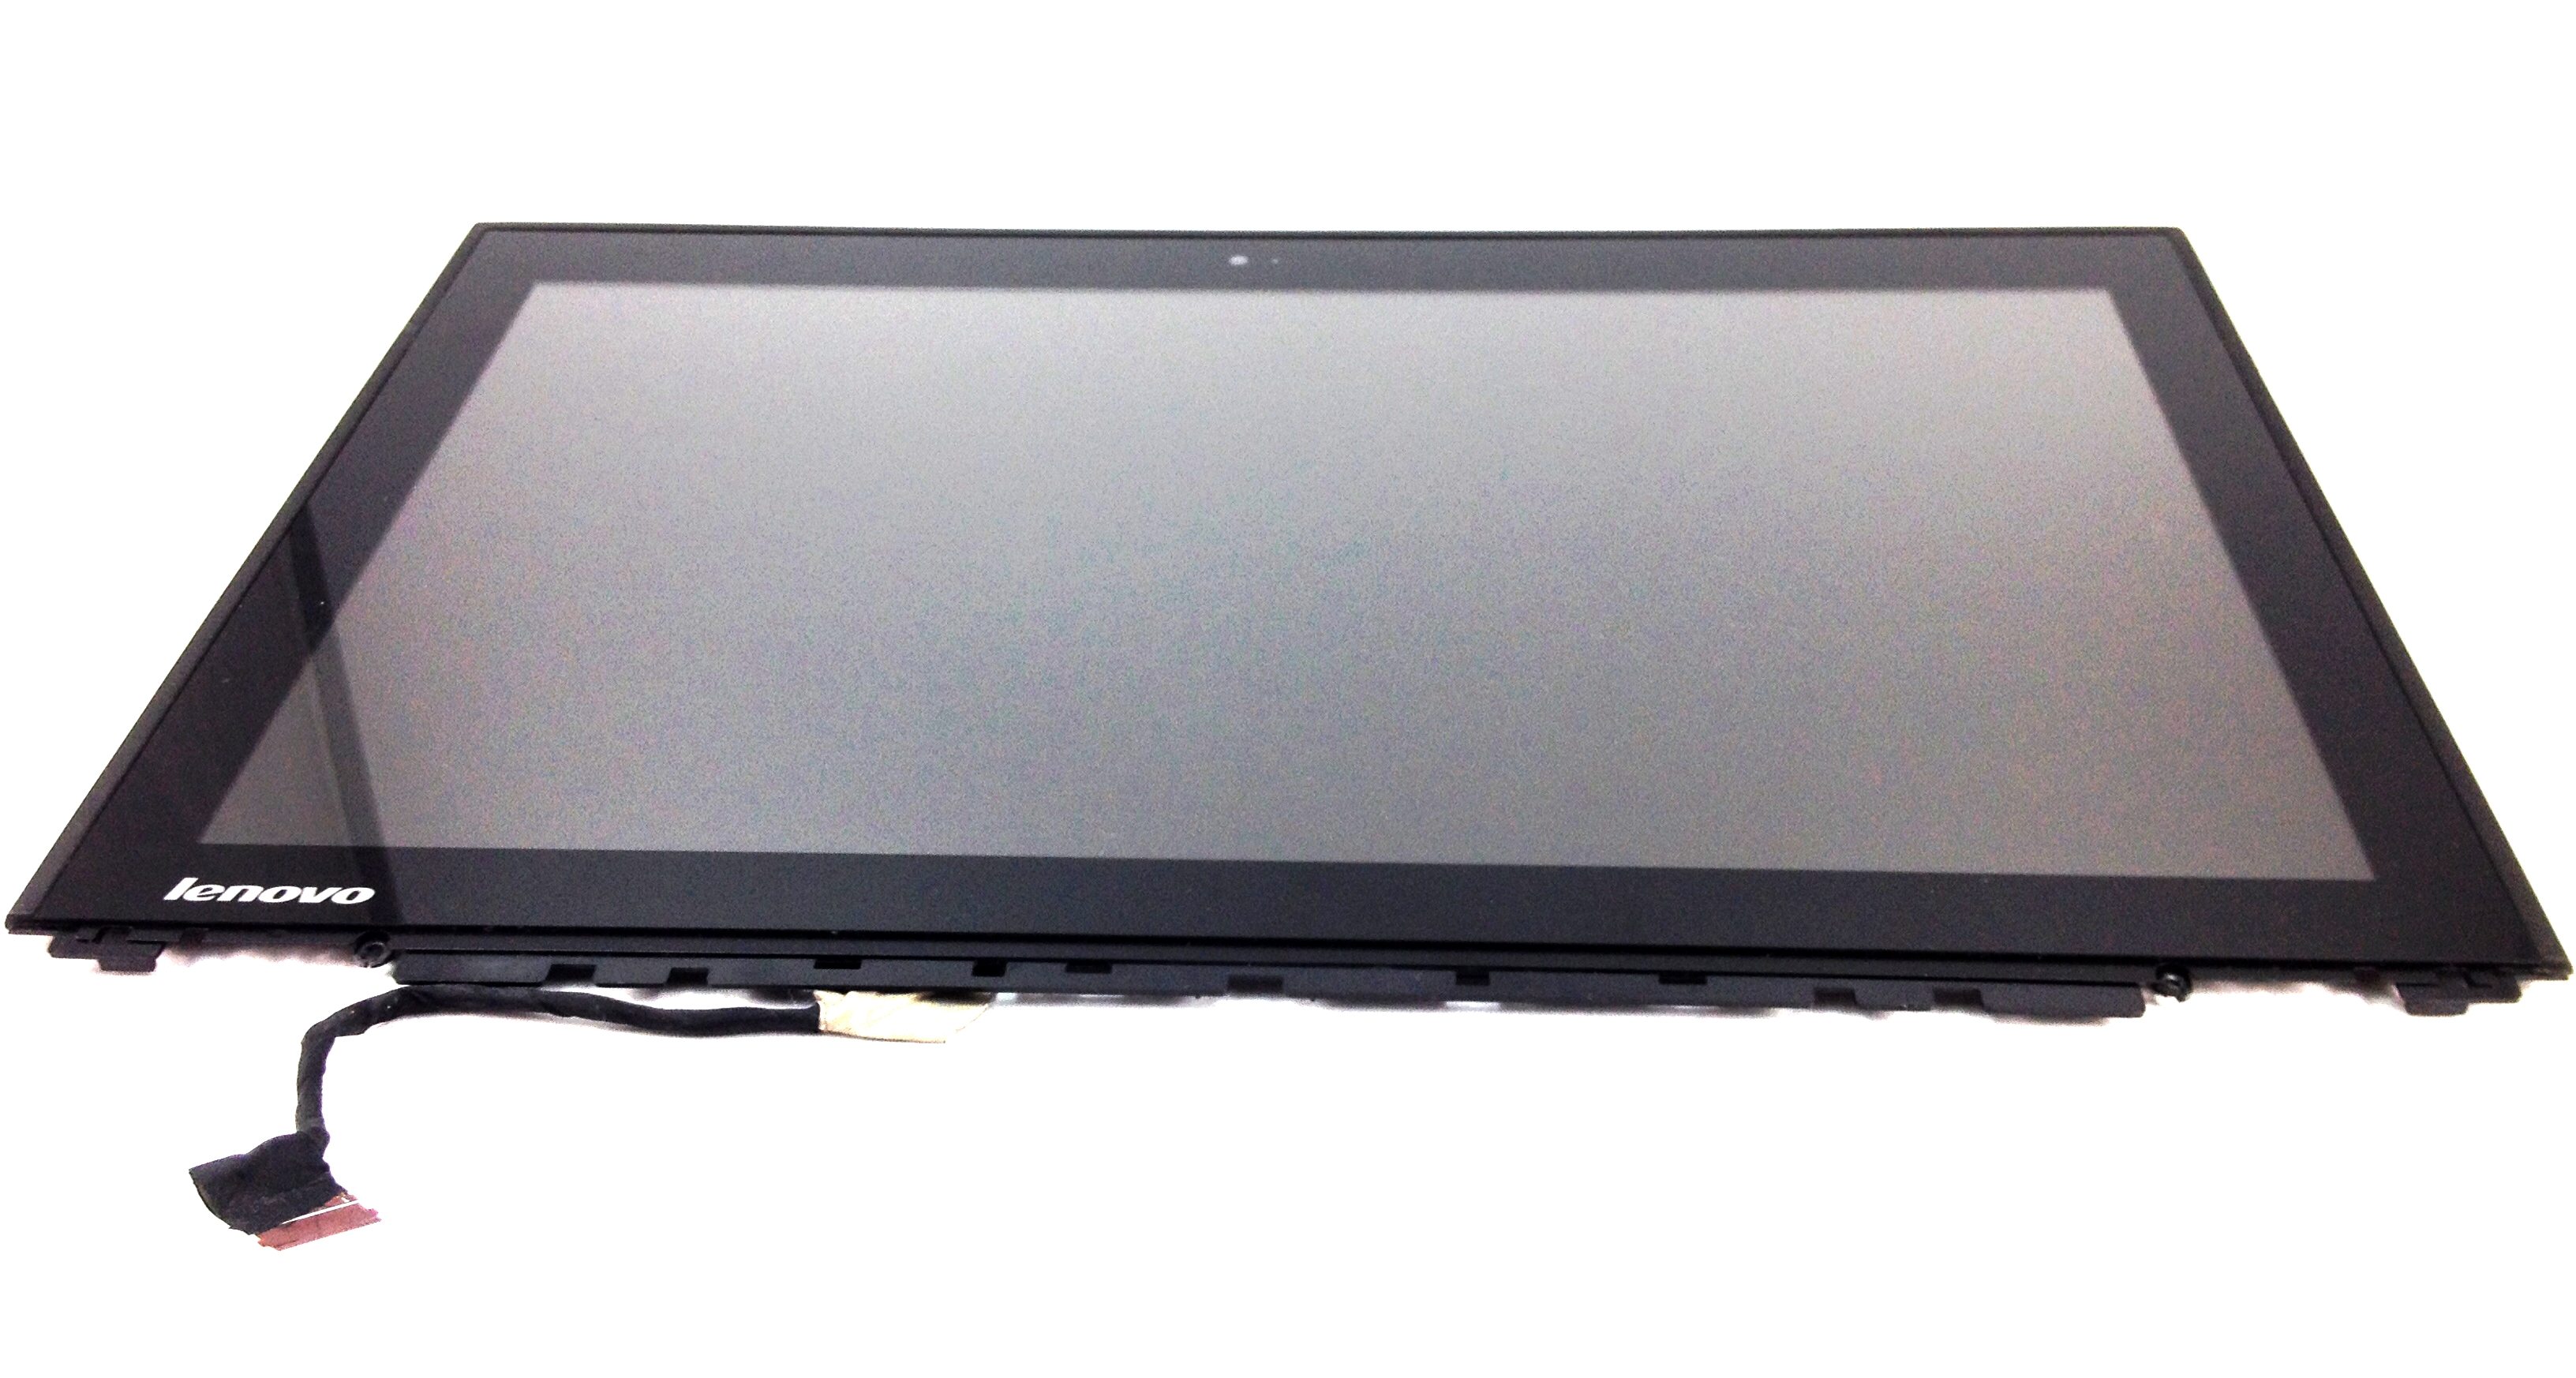 Lenovo ThinkPad X1 13.3'' Led Screen 30 Pin Edp Lg Lp133Wh2 (Tl)(M5) (04W1768)